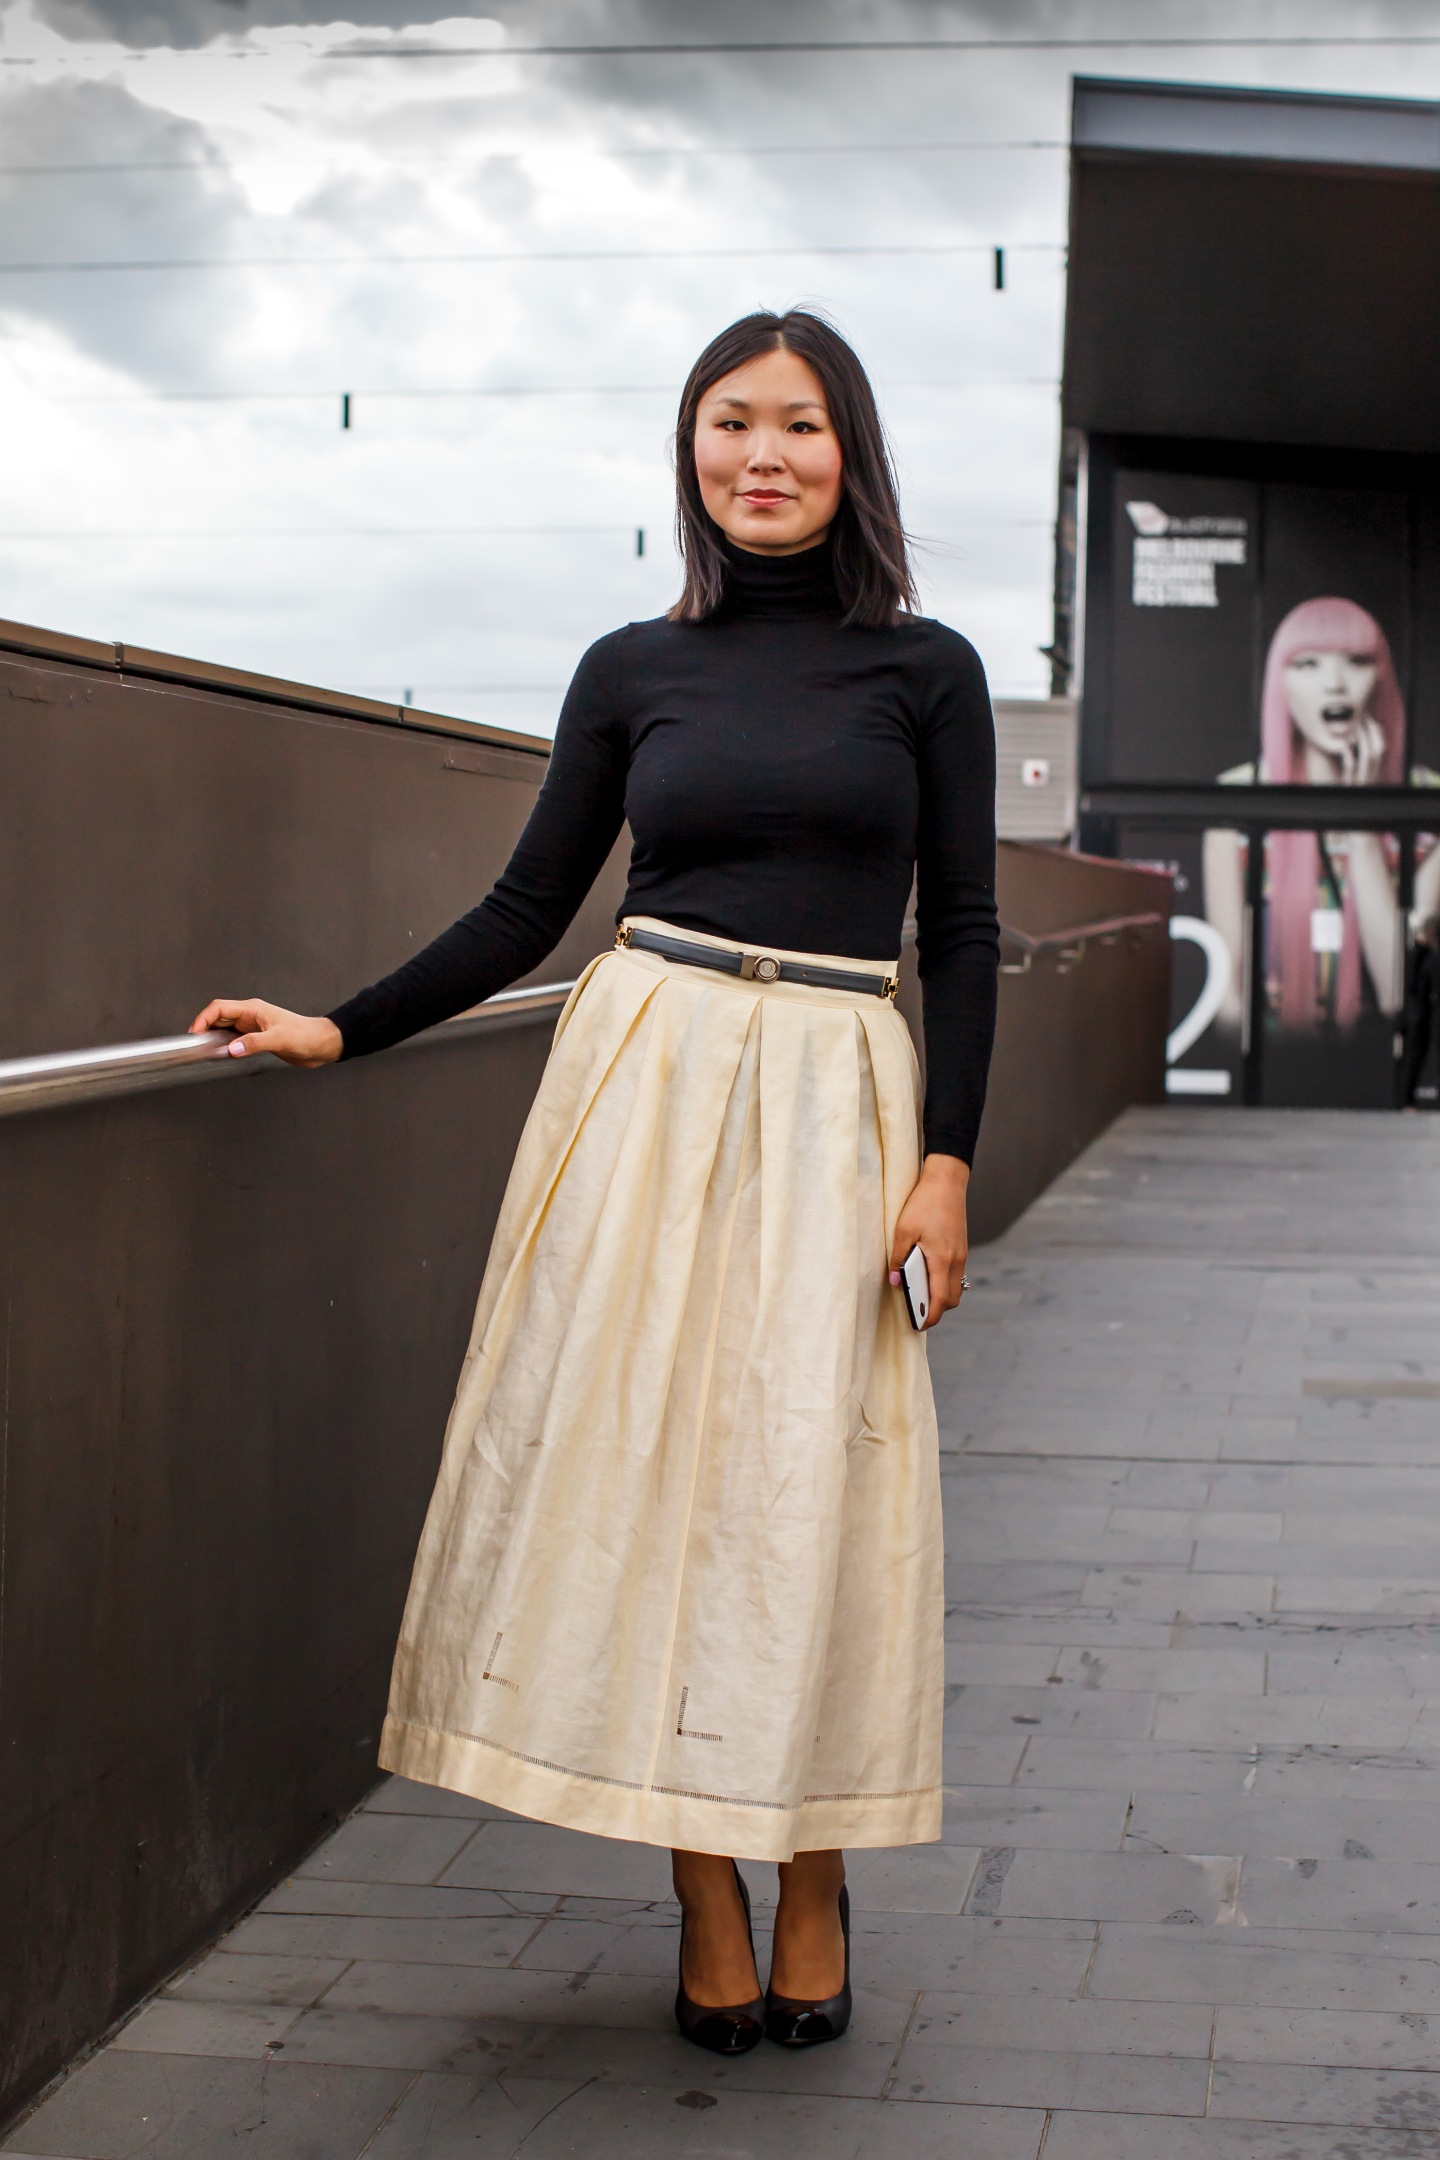 Midi skirt, skirt, tops, turtleneck, heels, women's wear, street style, your ensemble, yourensemble, yourensemble.com